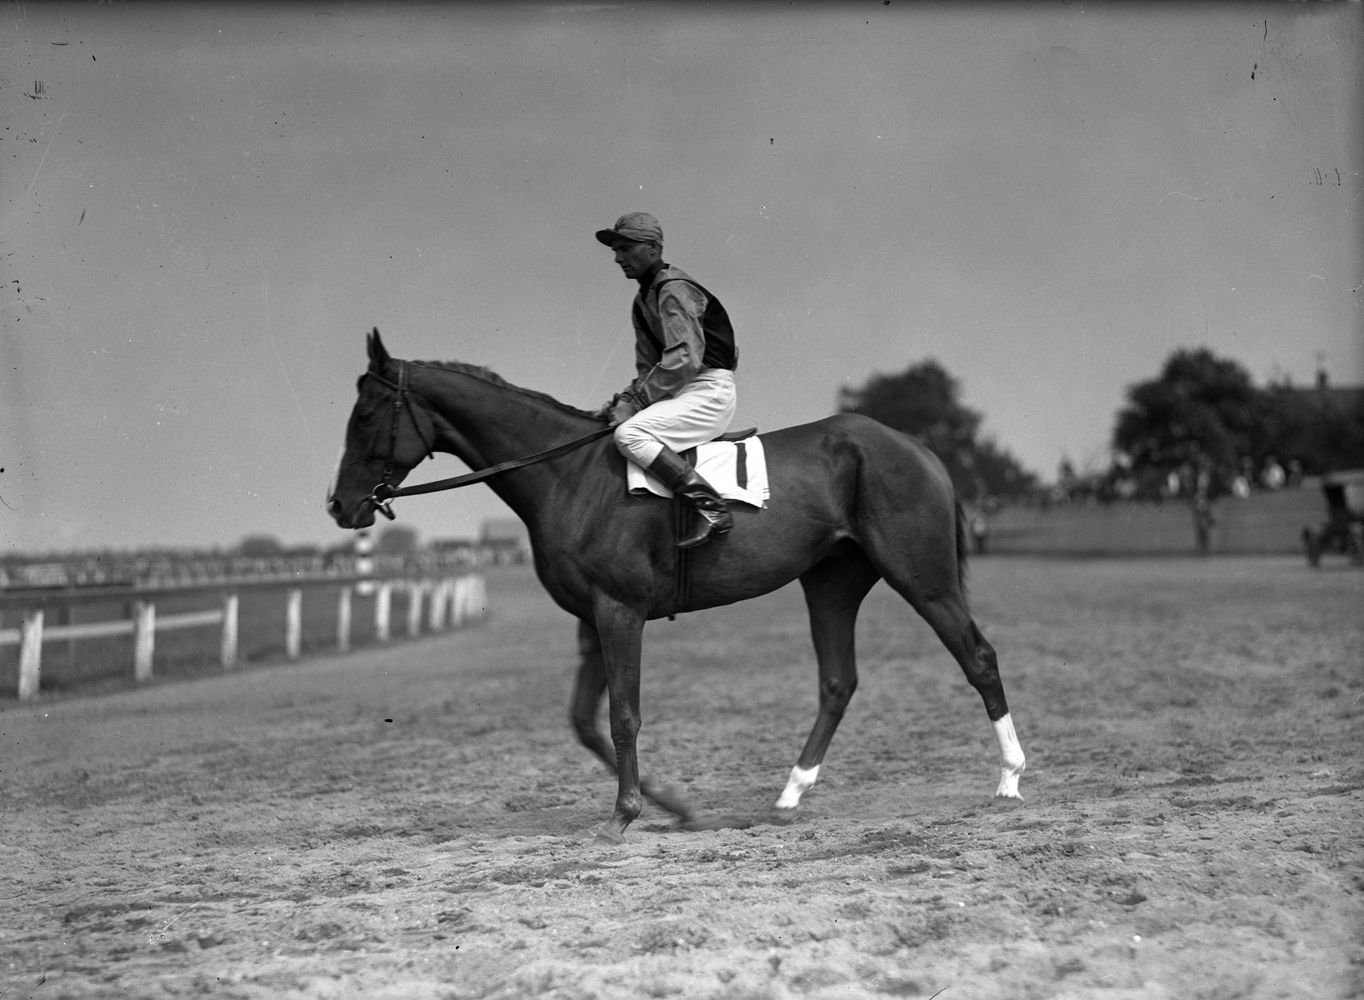 Sarazen with Earl Sande up (Keeneland Library Cook Collection)